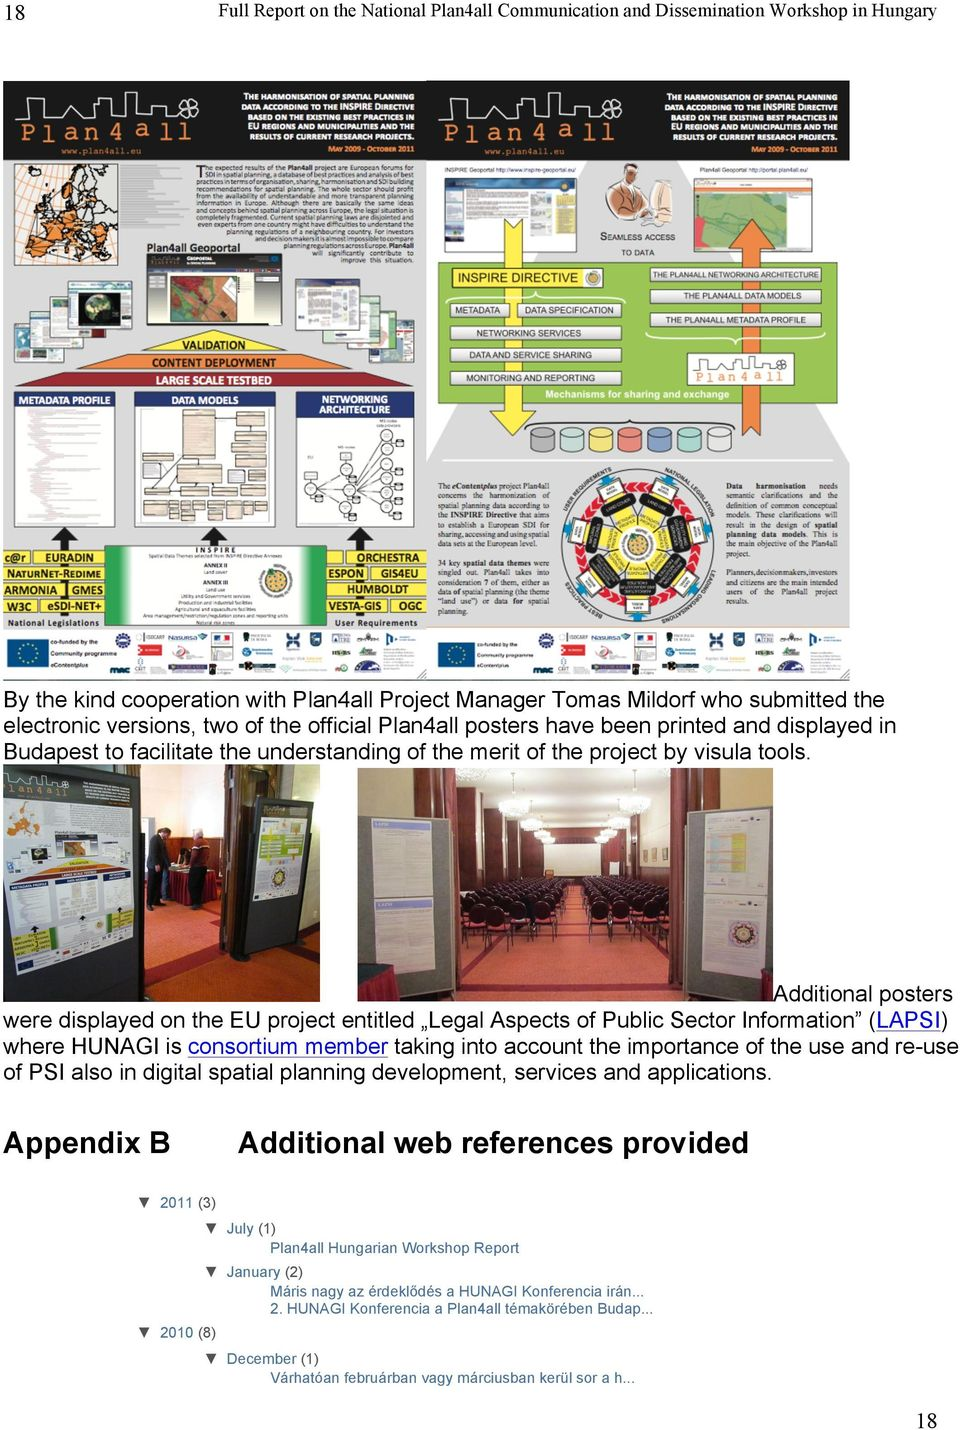 Additional posters were displayed on the EU project entitled Legal Aspects of Public Sector Information (LAPSI) where HUNAGI is consortium member taking into account the importance of the use and